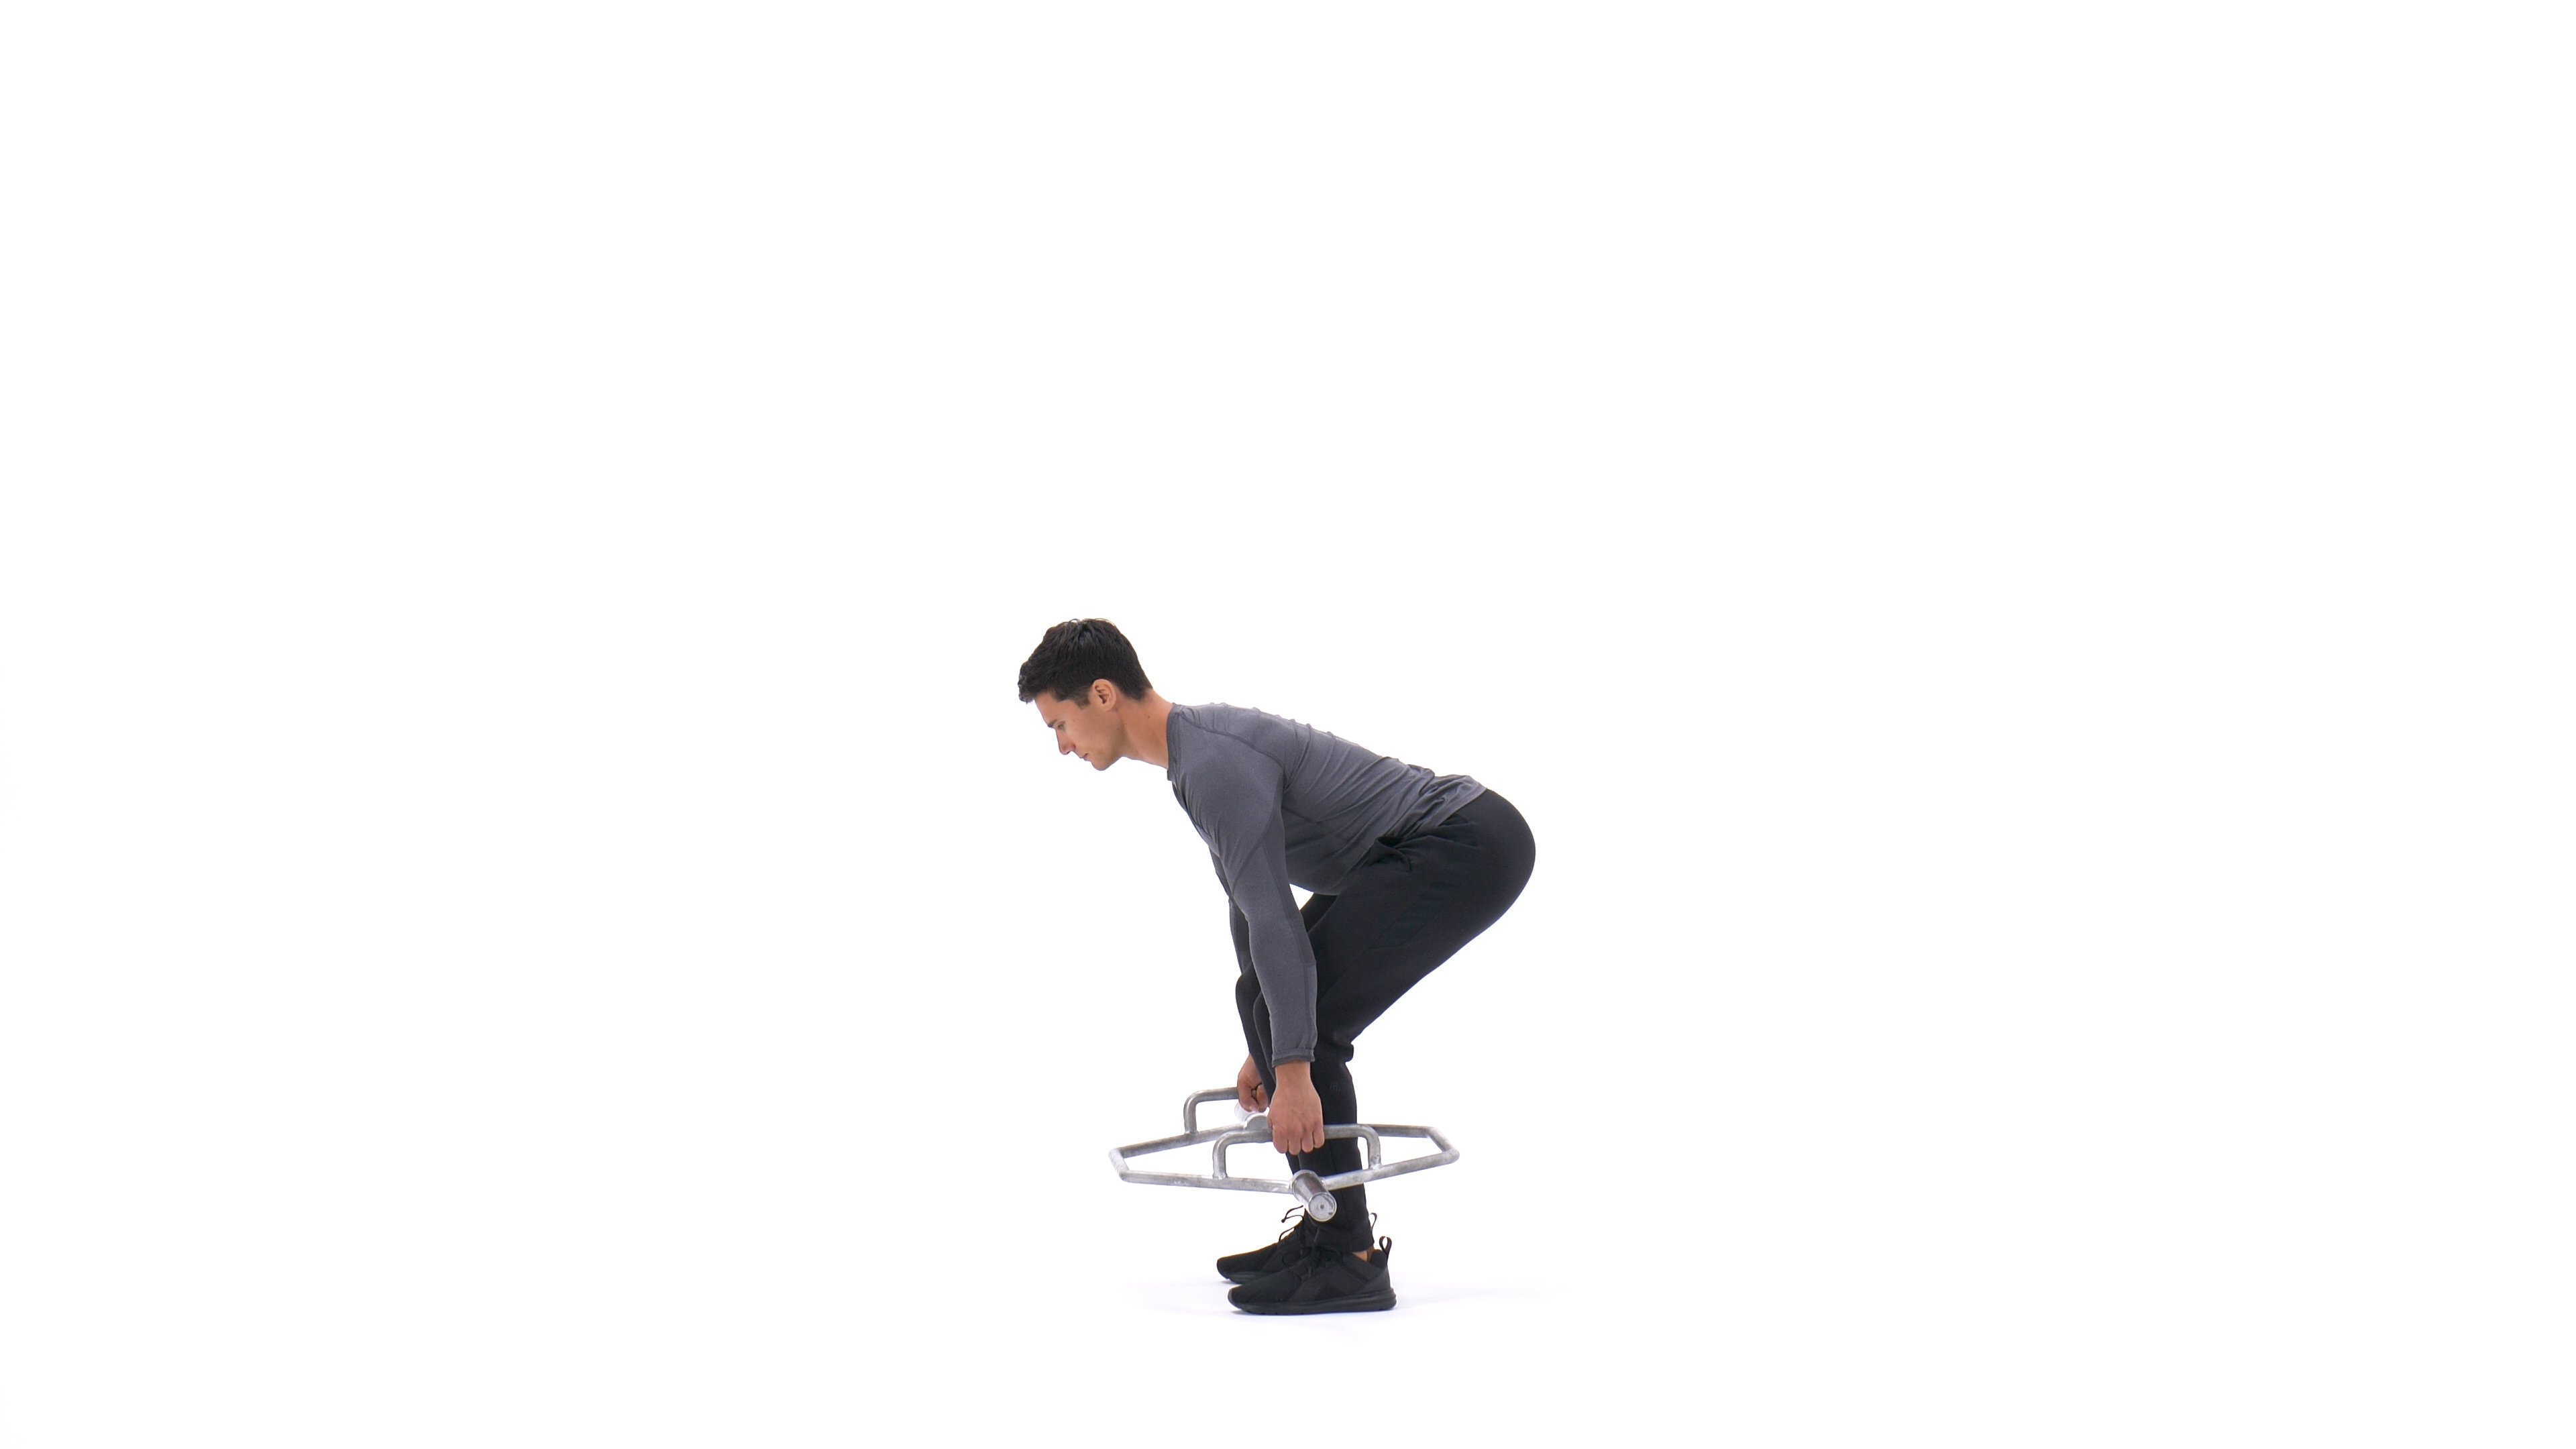 Hex-bar deadlift image